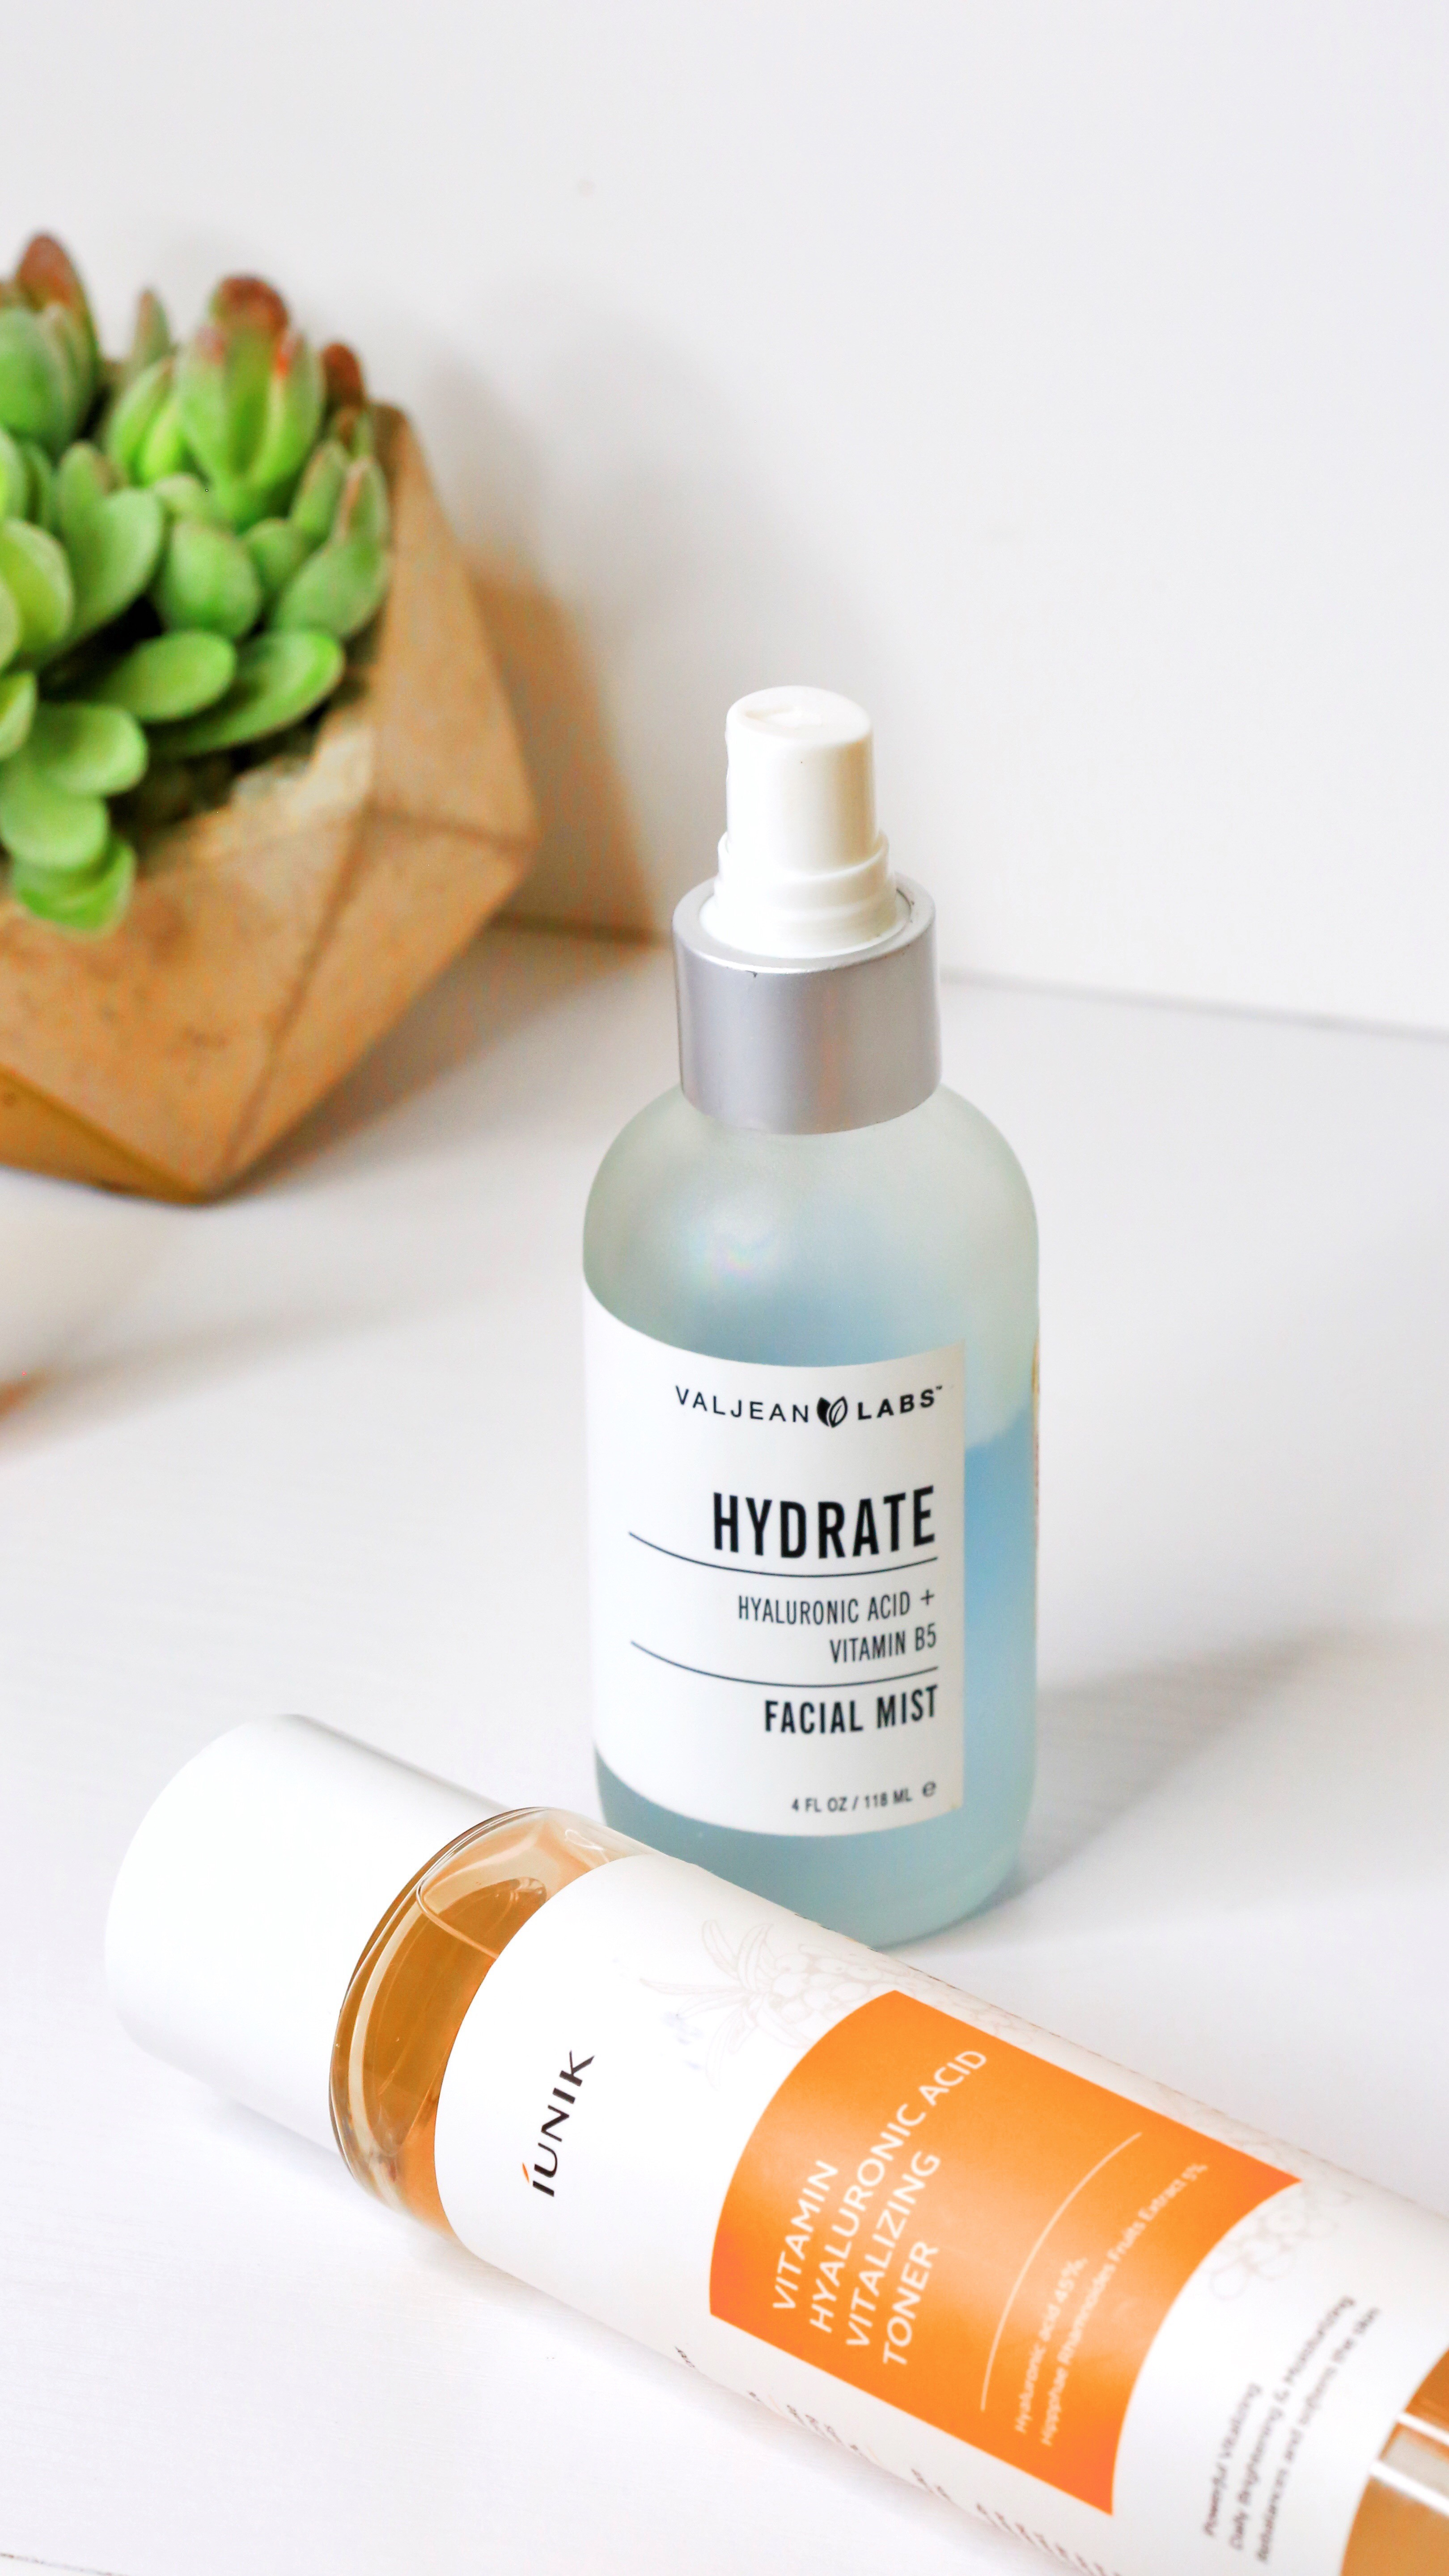 Skincare 101: The Best Way to Use Hyaluronic Acid in your Routine